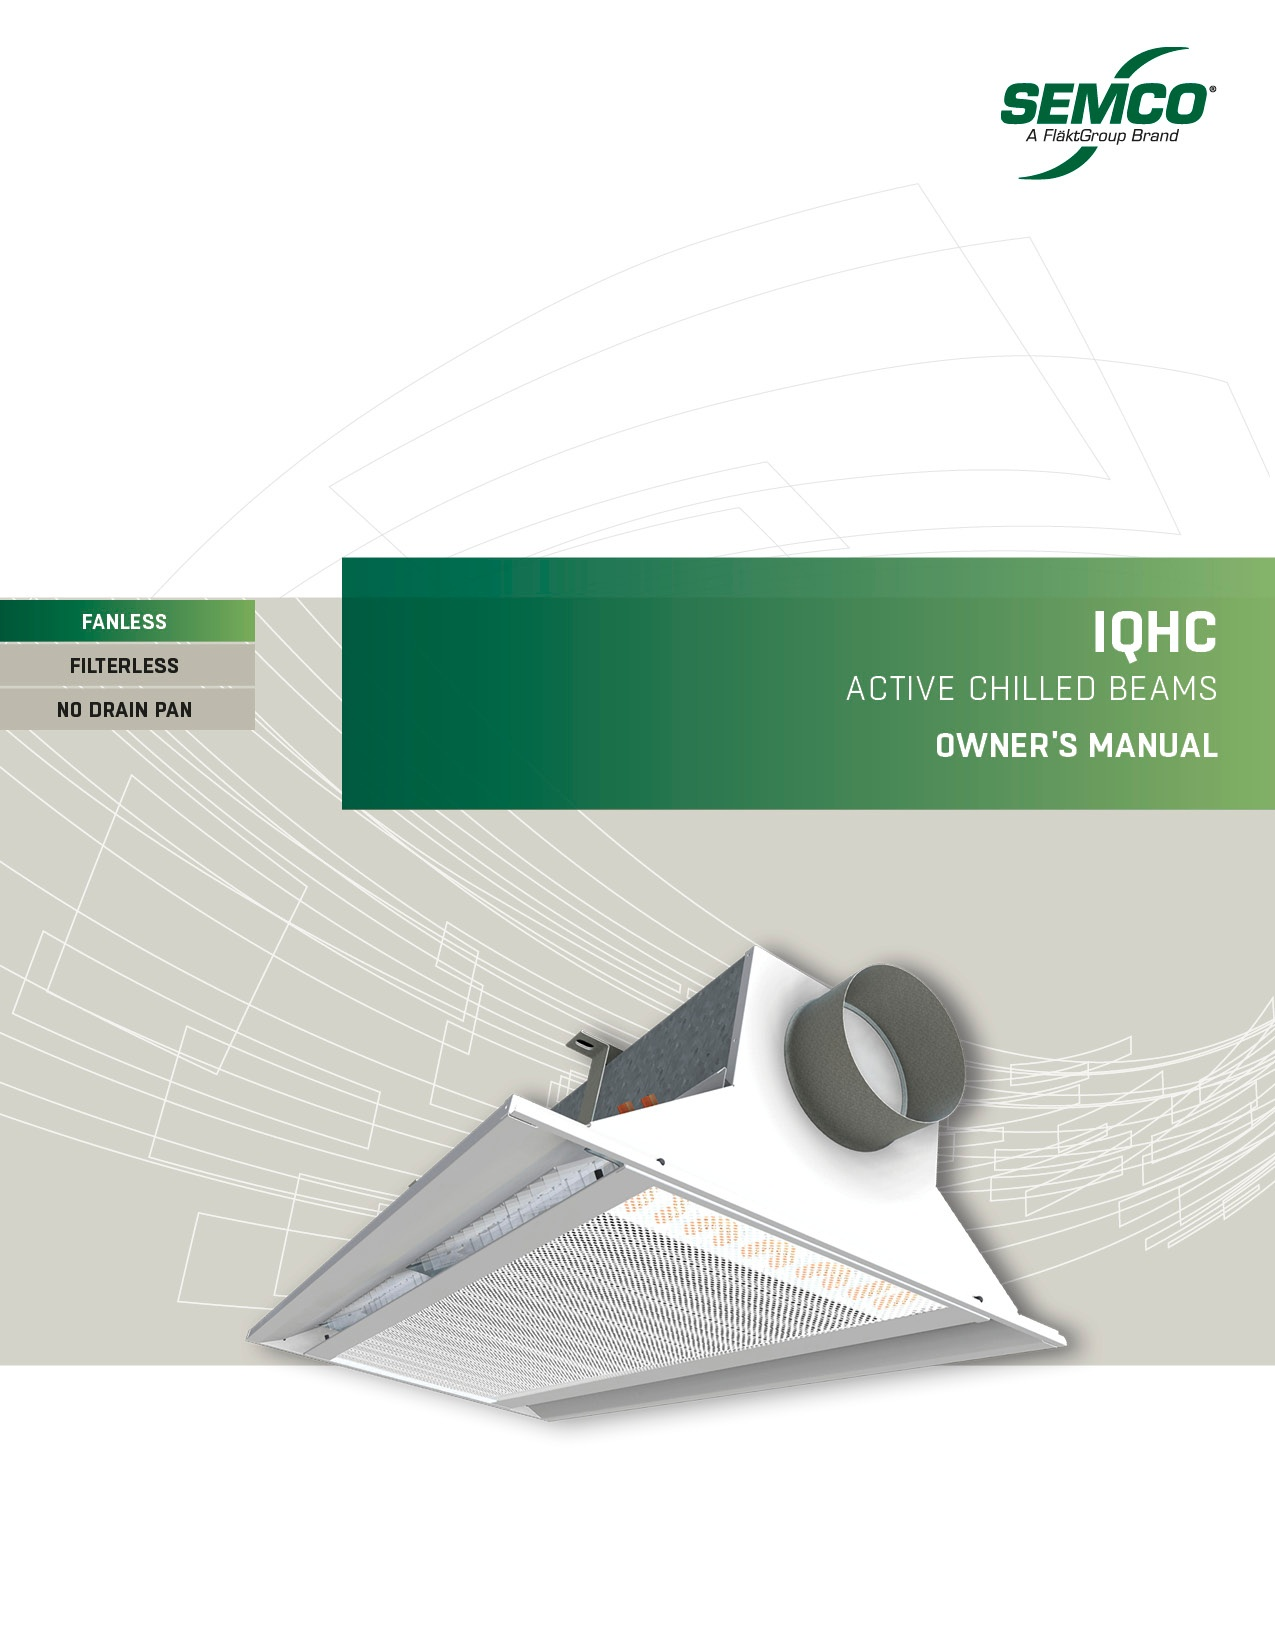 IQHC Chilled Beam Owners Manual Cover.jpg